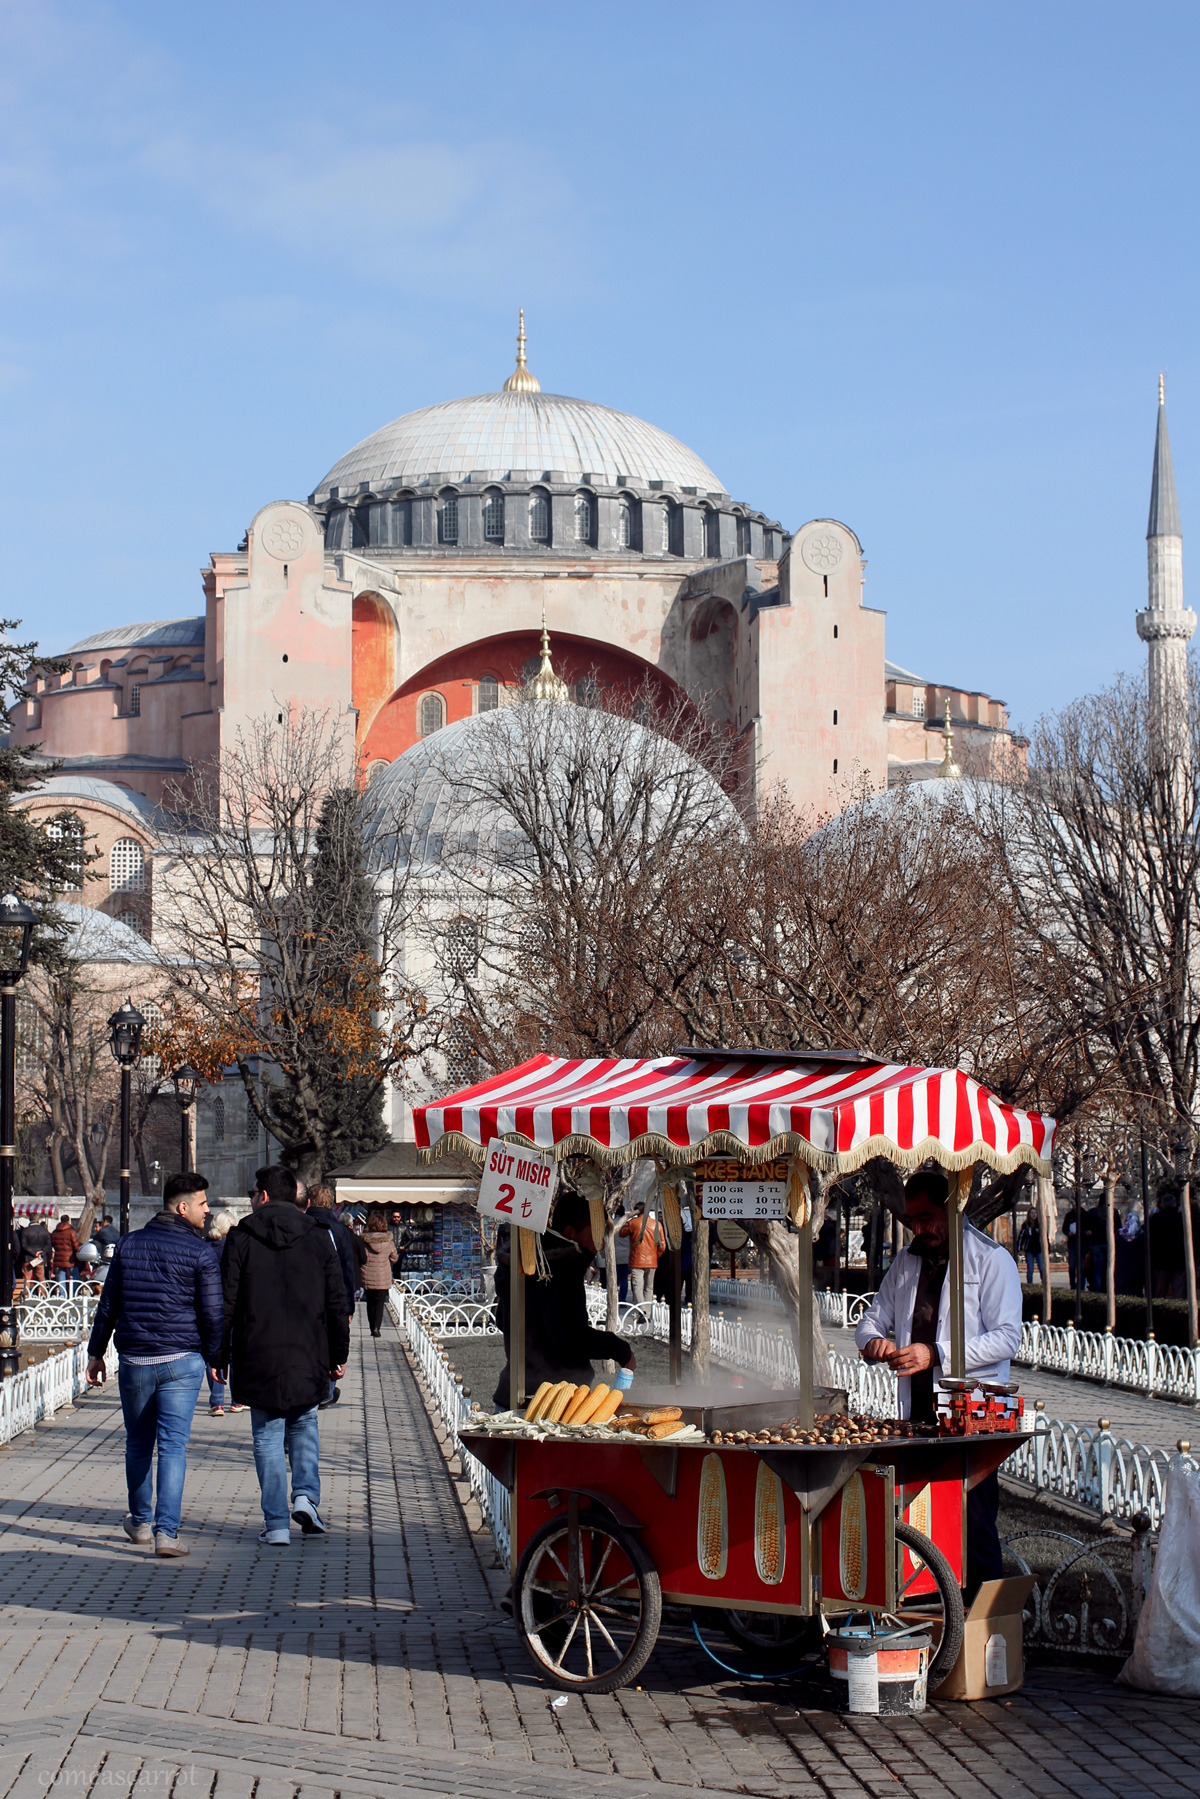 travel, guide, istanbul, turkey, fashionblog, blogger, fashion, essen, comeascarrot, come as carrot, things, to do, blog, hagia sofia, aya sofya, mosque